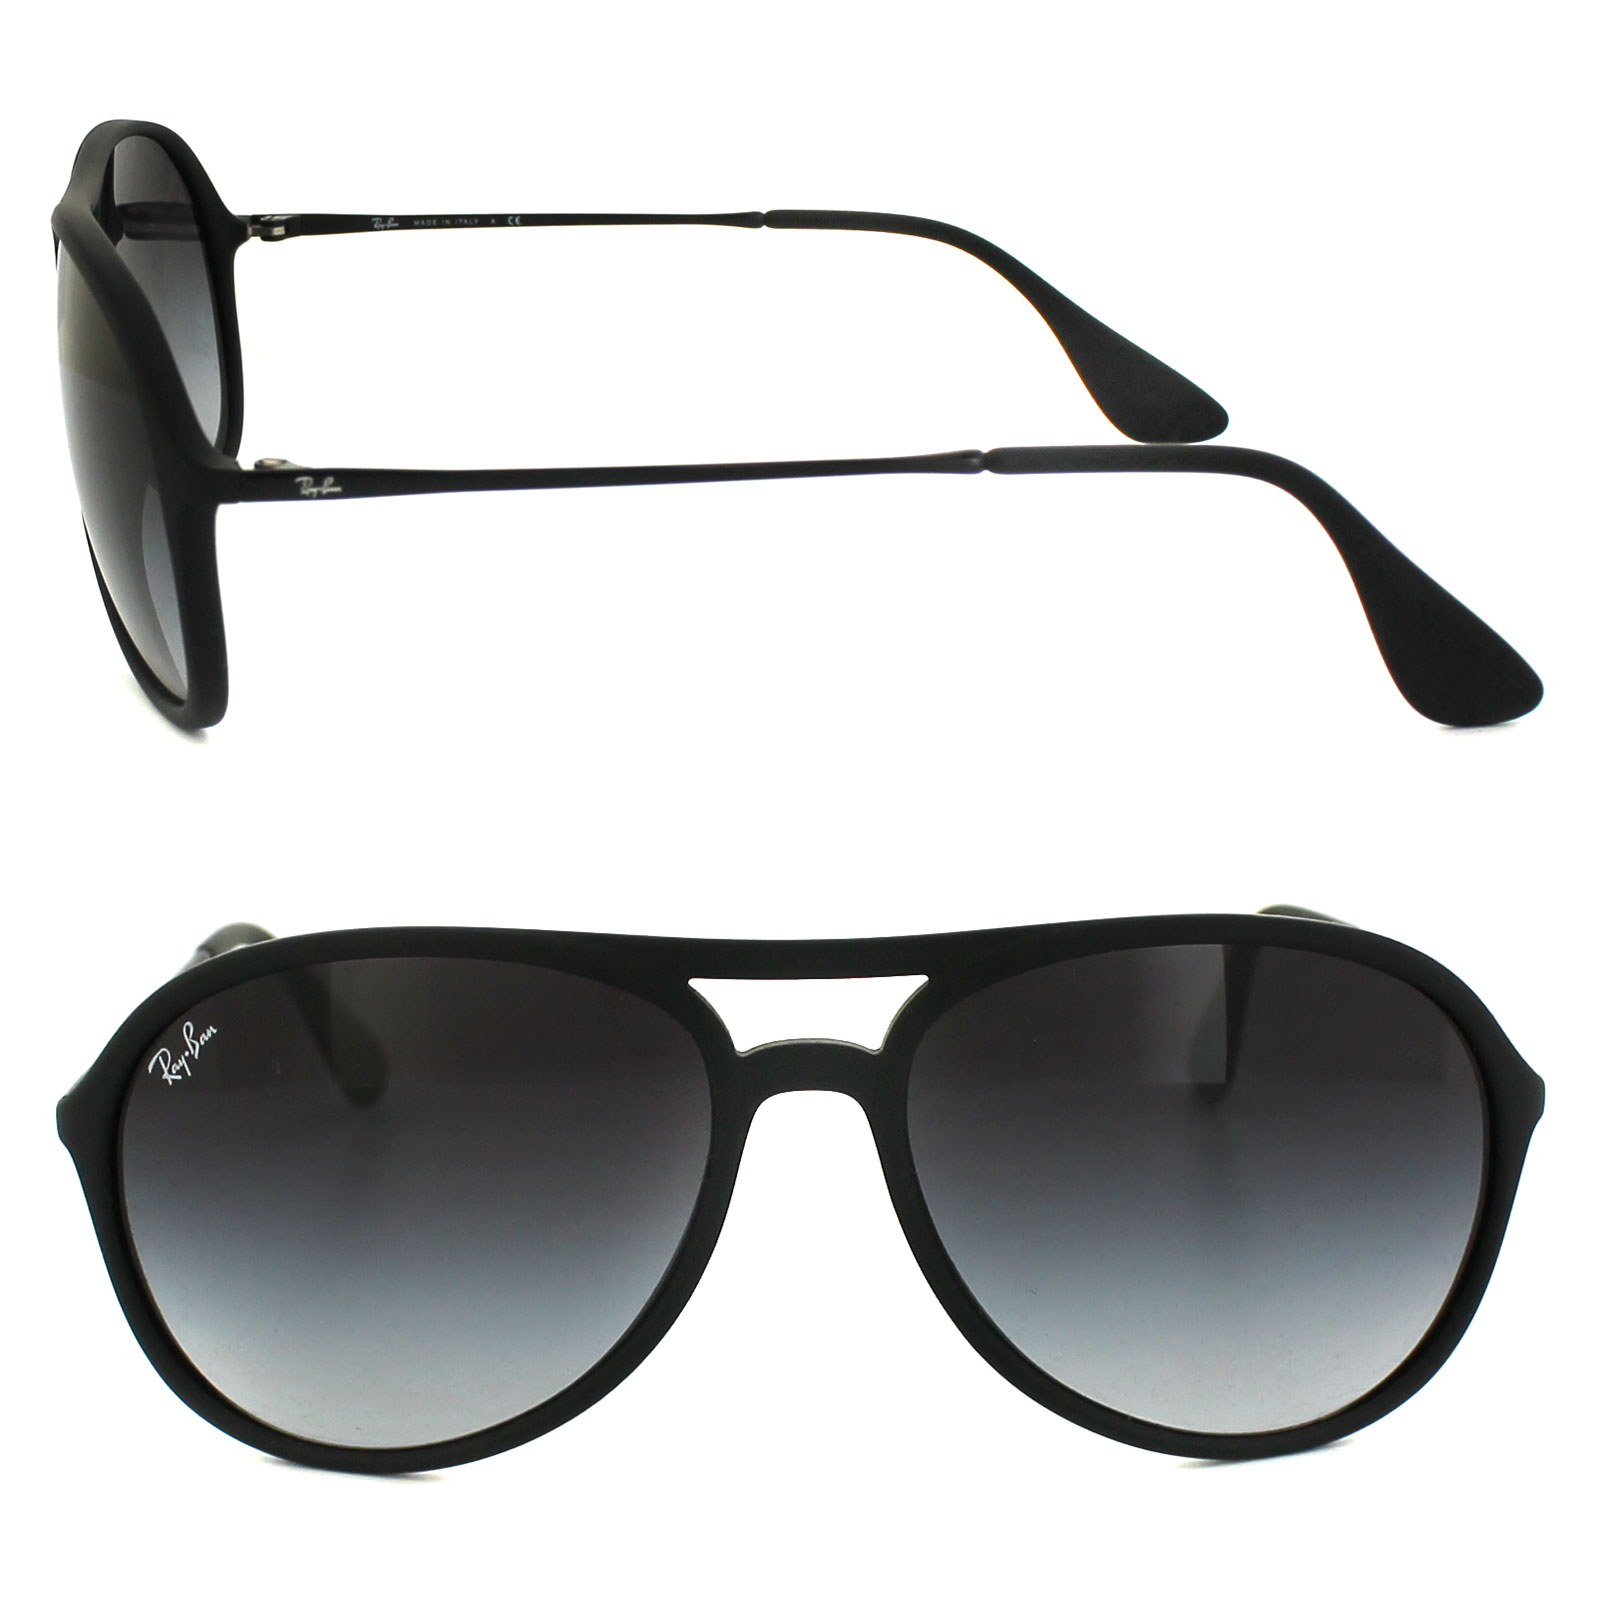 0f973858092 Sentinel Ray-Ban Sunglasses Alex 4201 622 8G Rubber Black Grey Gradient